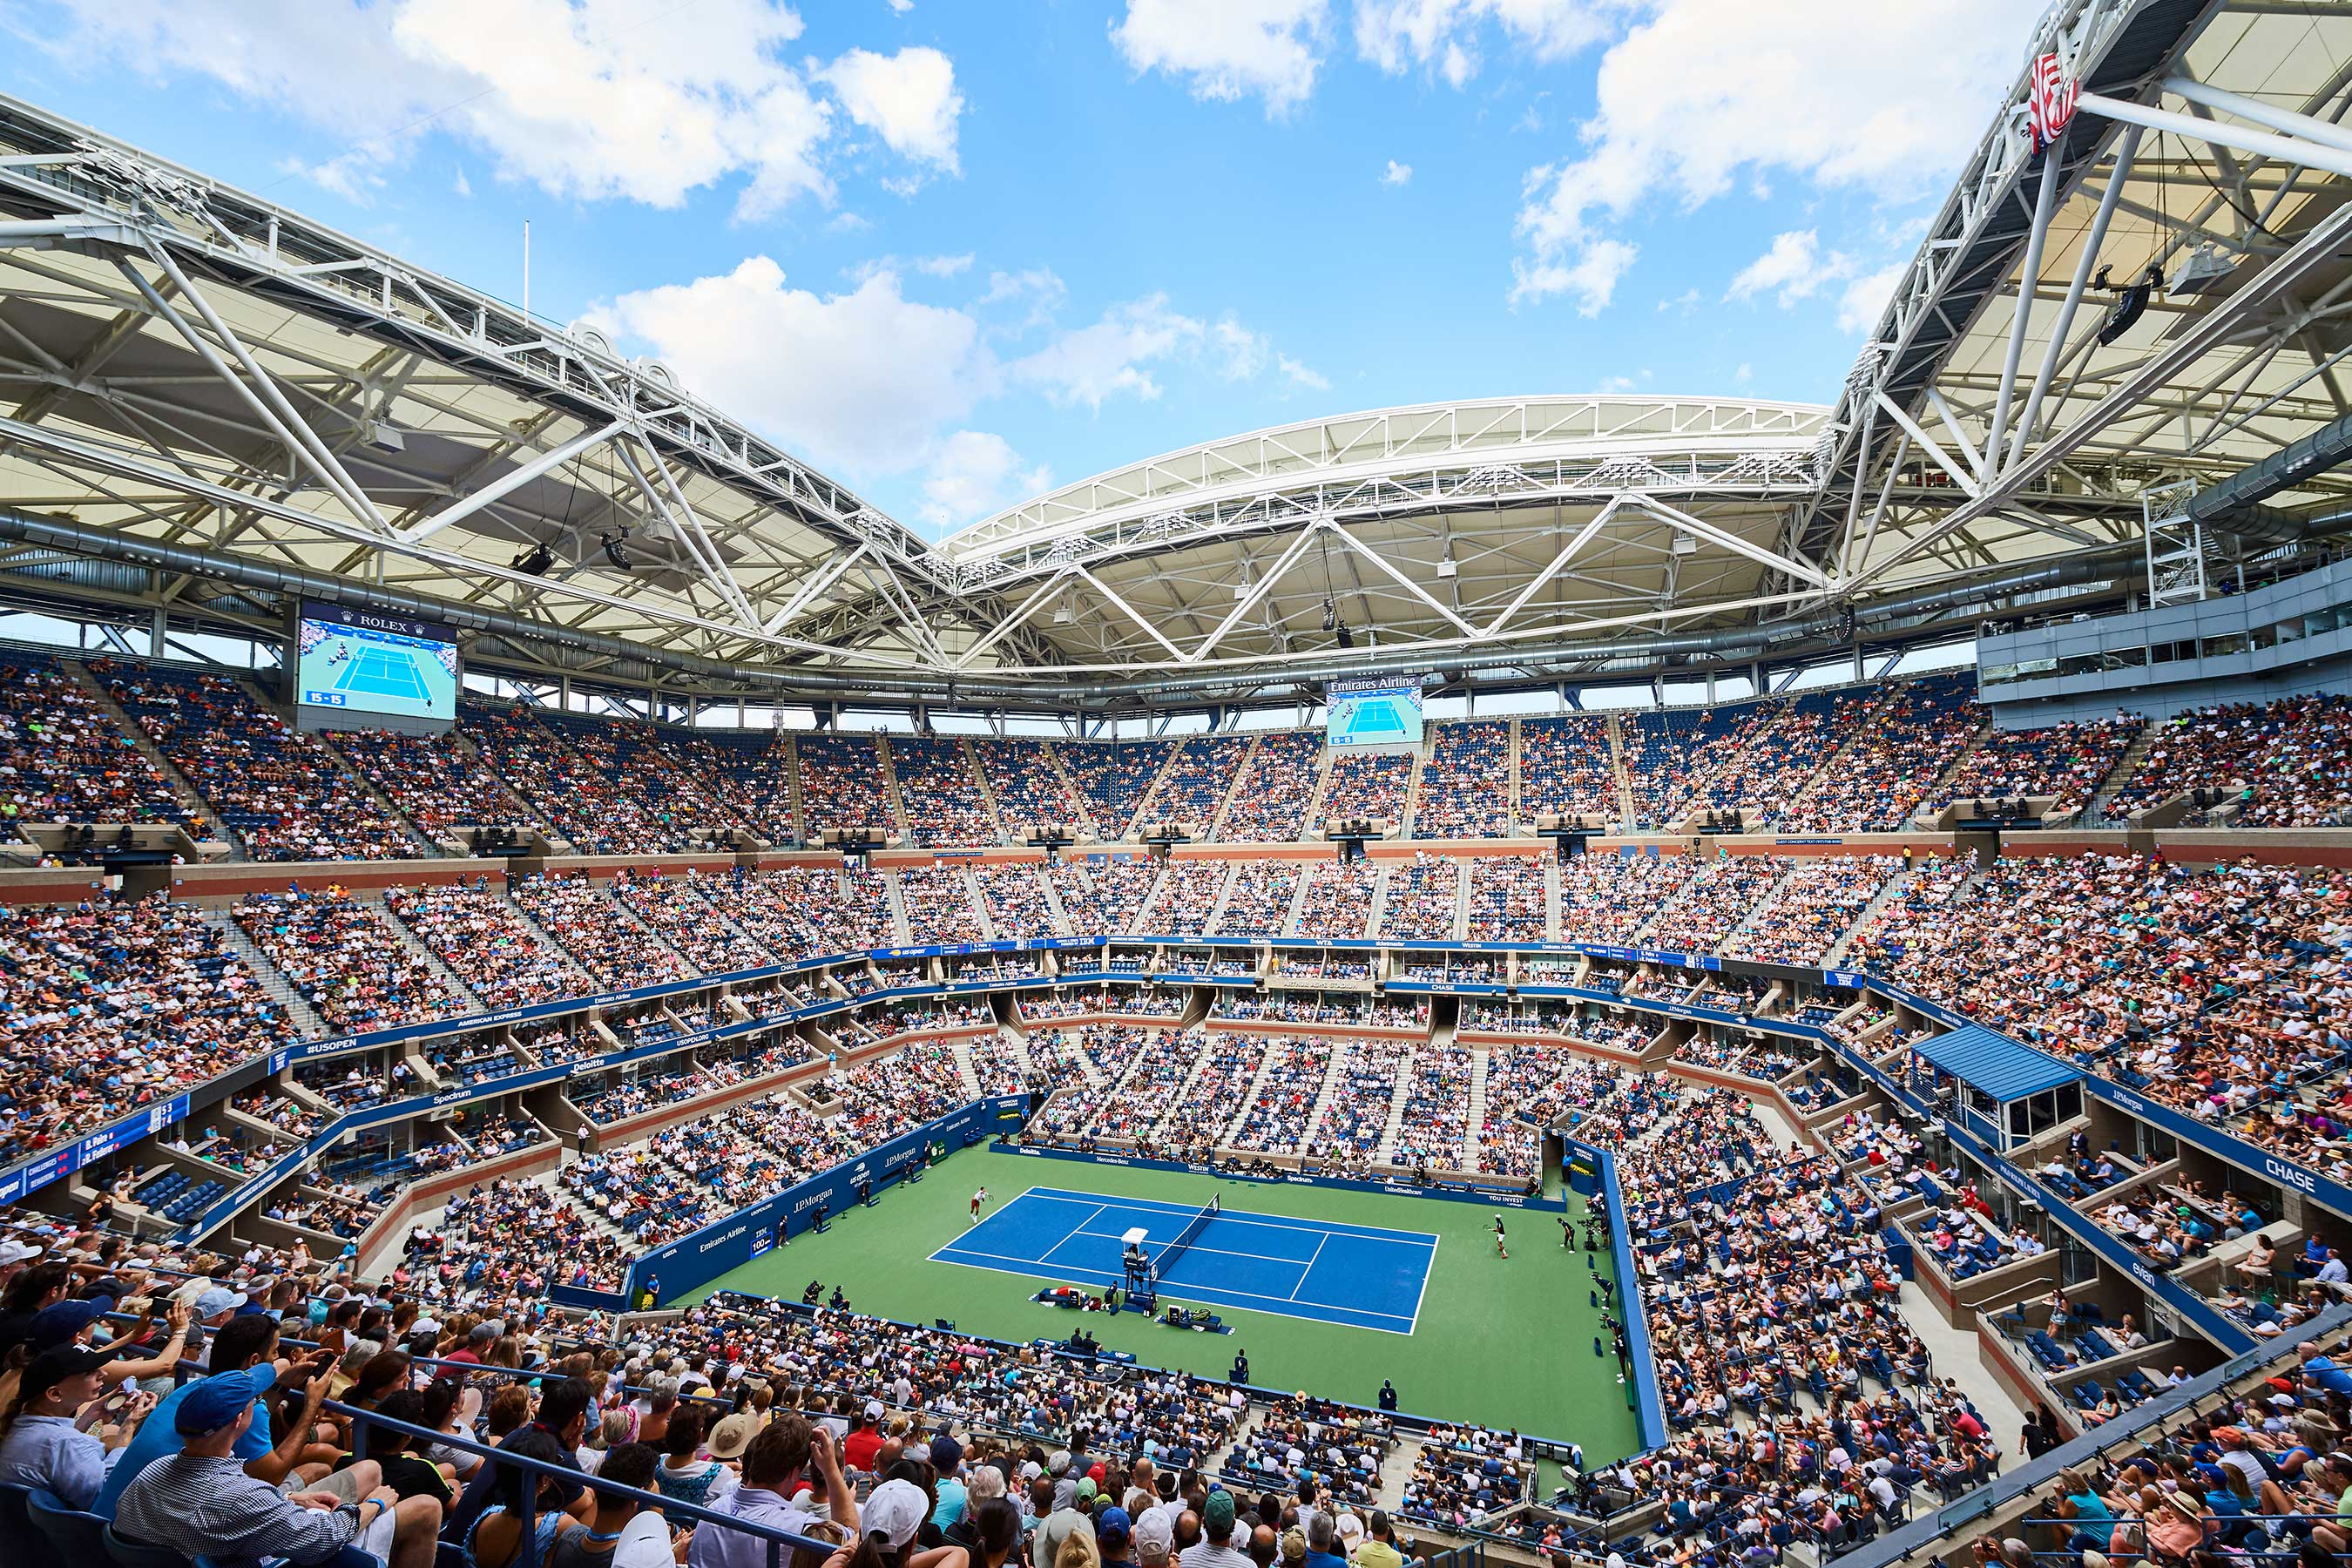 IHG® Hotels & Resorts Serves Up One-of-a-Kind Experiences at 2019 US Open